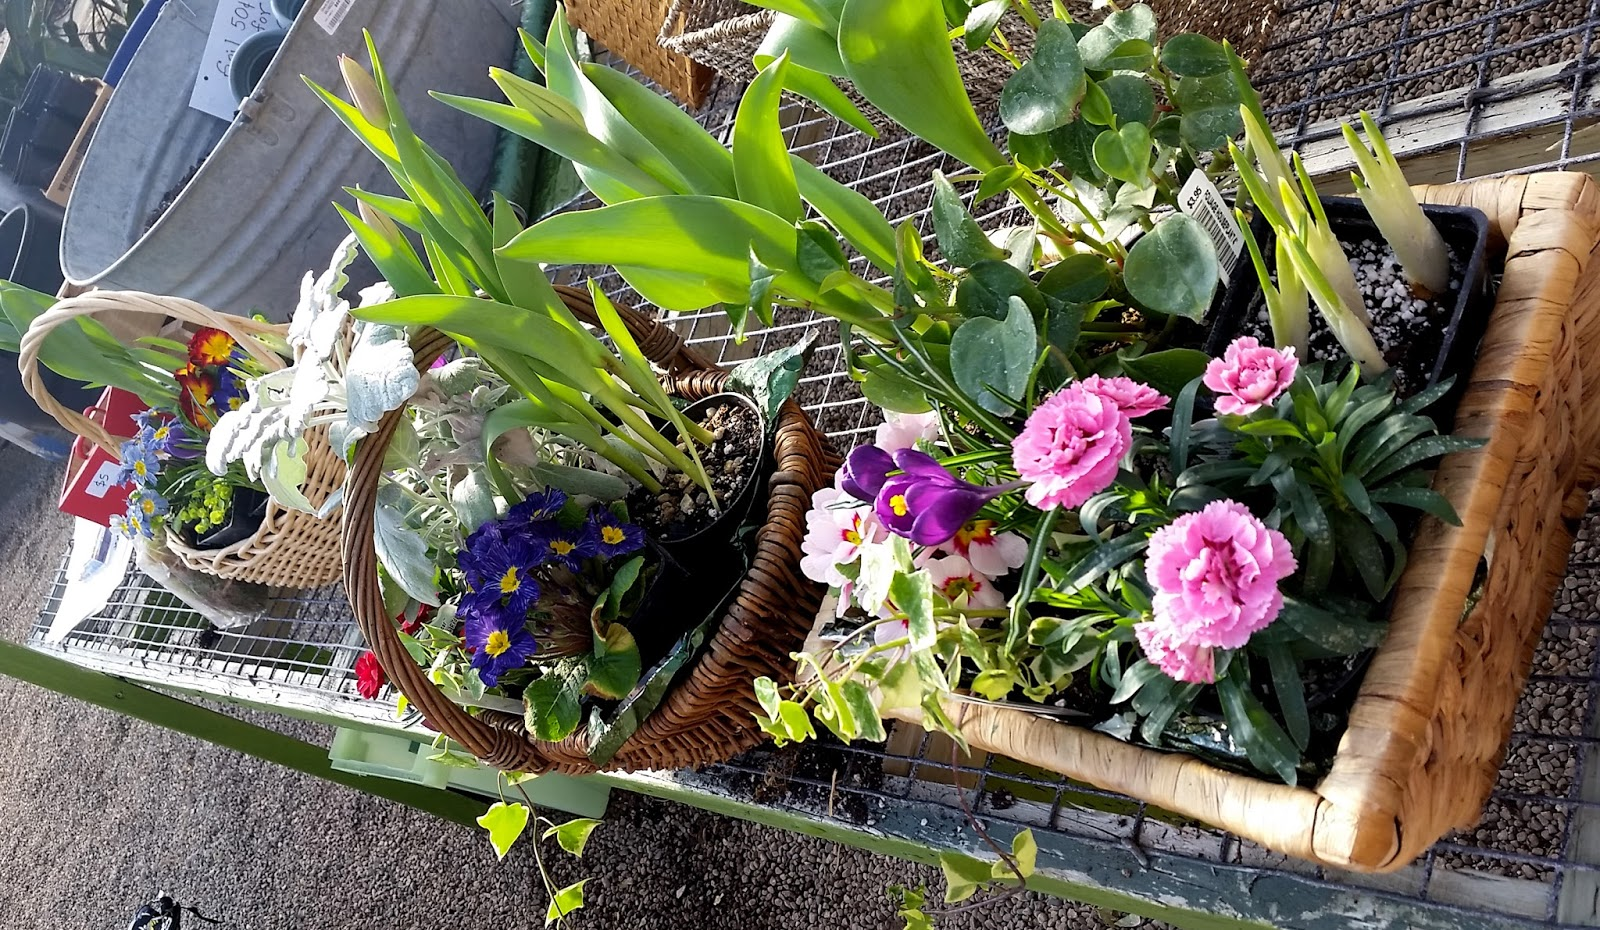 Edward's Greenhouse floral baskets